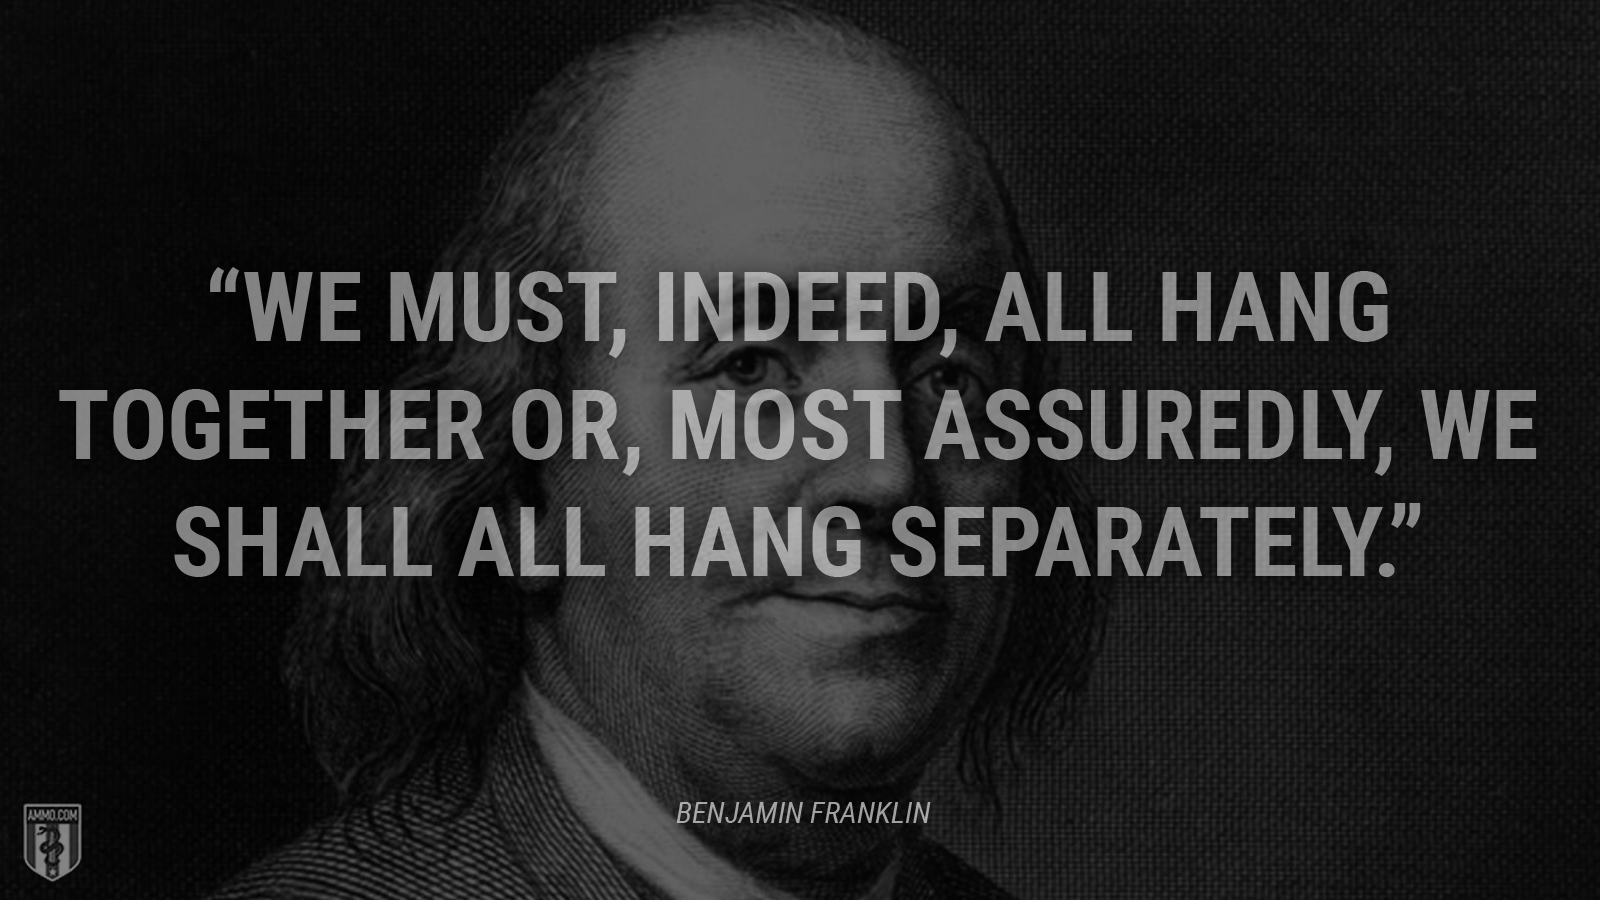 """We must, indeed, all hang together or, most assuredly, we shall all hang separately."" - Ben Franklin"